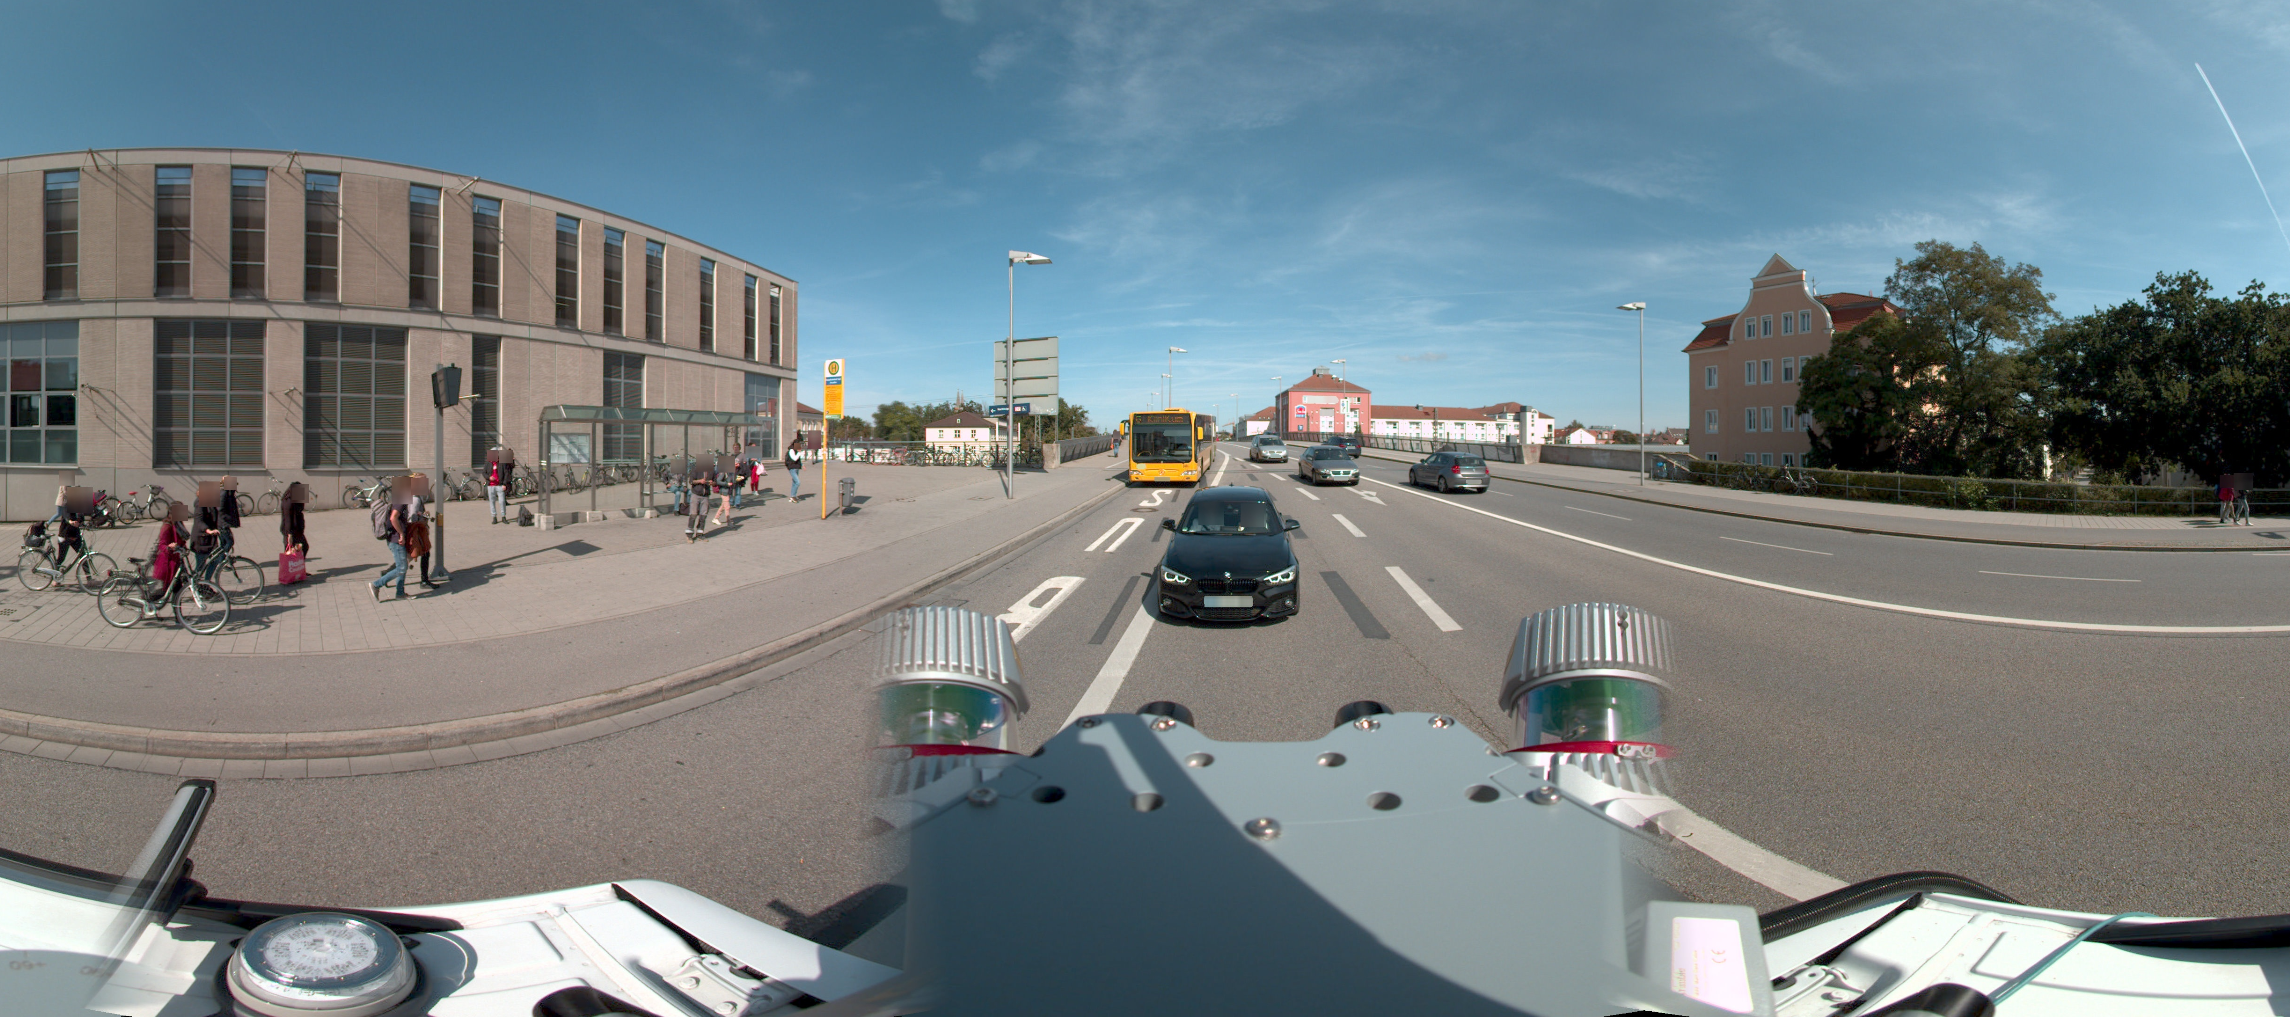 Mobile Mapping Street-Level Panorama, with blurred faces and license plates